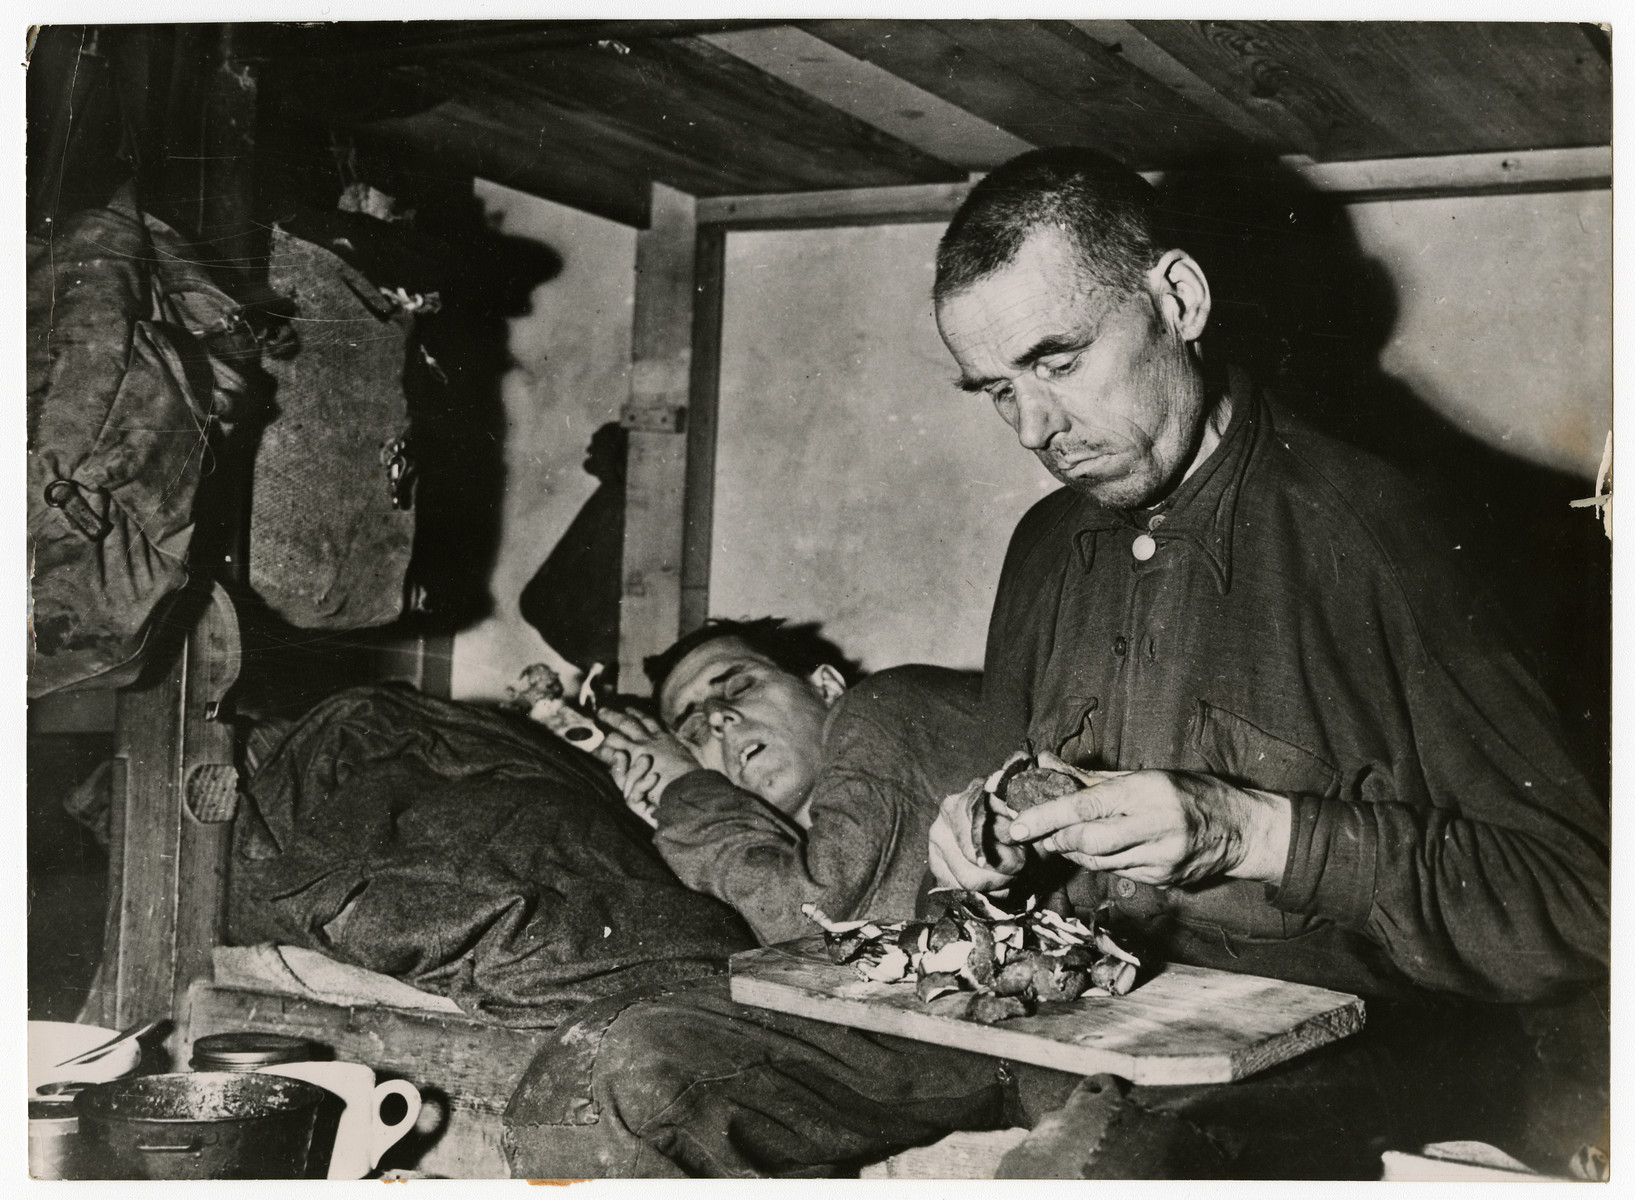 A liberated Russian prisoner peels potatoes in a former Nazi prisoner room.   Russians Liberated from Nazi Camp A liberated Russian prisoner of the Nazi peels potatoes in the filthy room where he spent almost a year until he was liberated by Allied troops who captured Munster April 3, 1945. His companion sleeps beside him in the unsanitary room of Stalag 6-F where approximately 10,000 German prisoners of various nationalities were kept by the Germans. U.S. Signal Corps Photo